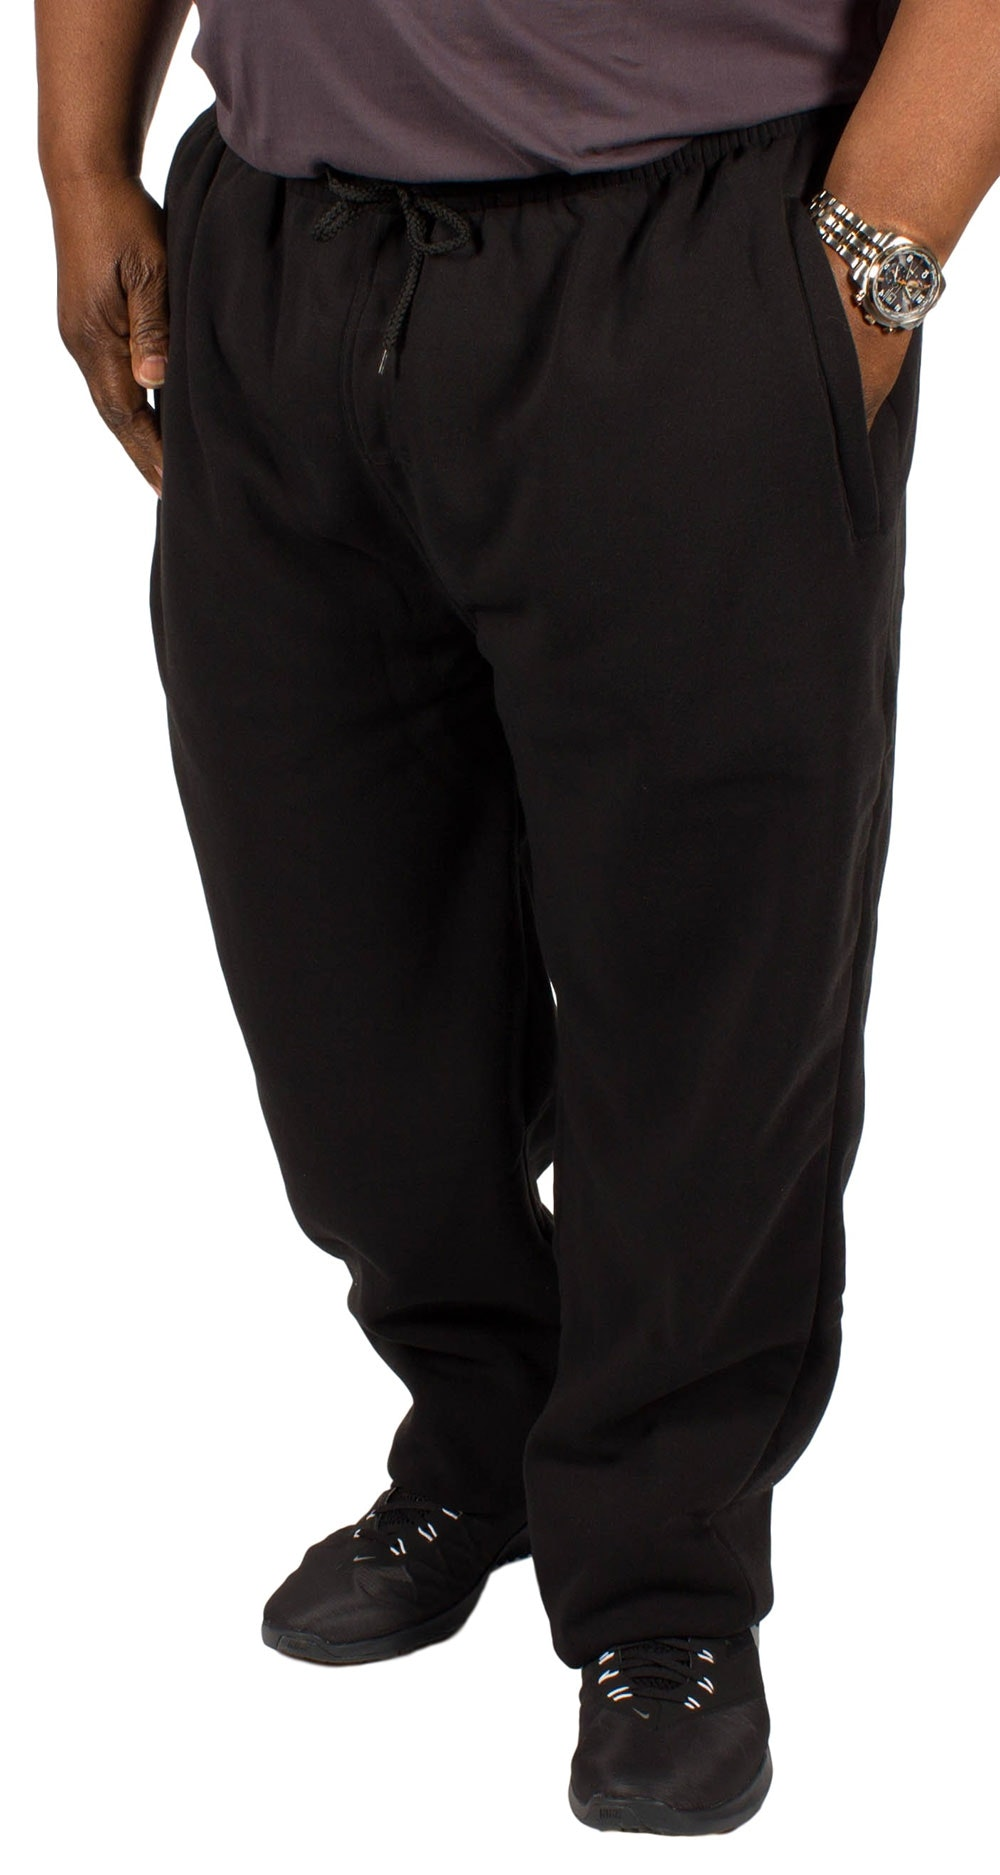 KAM Casual Jog Bottoms Black Extra Tall